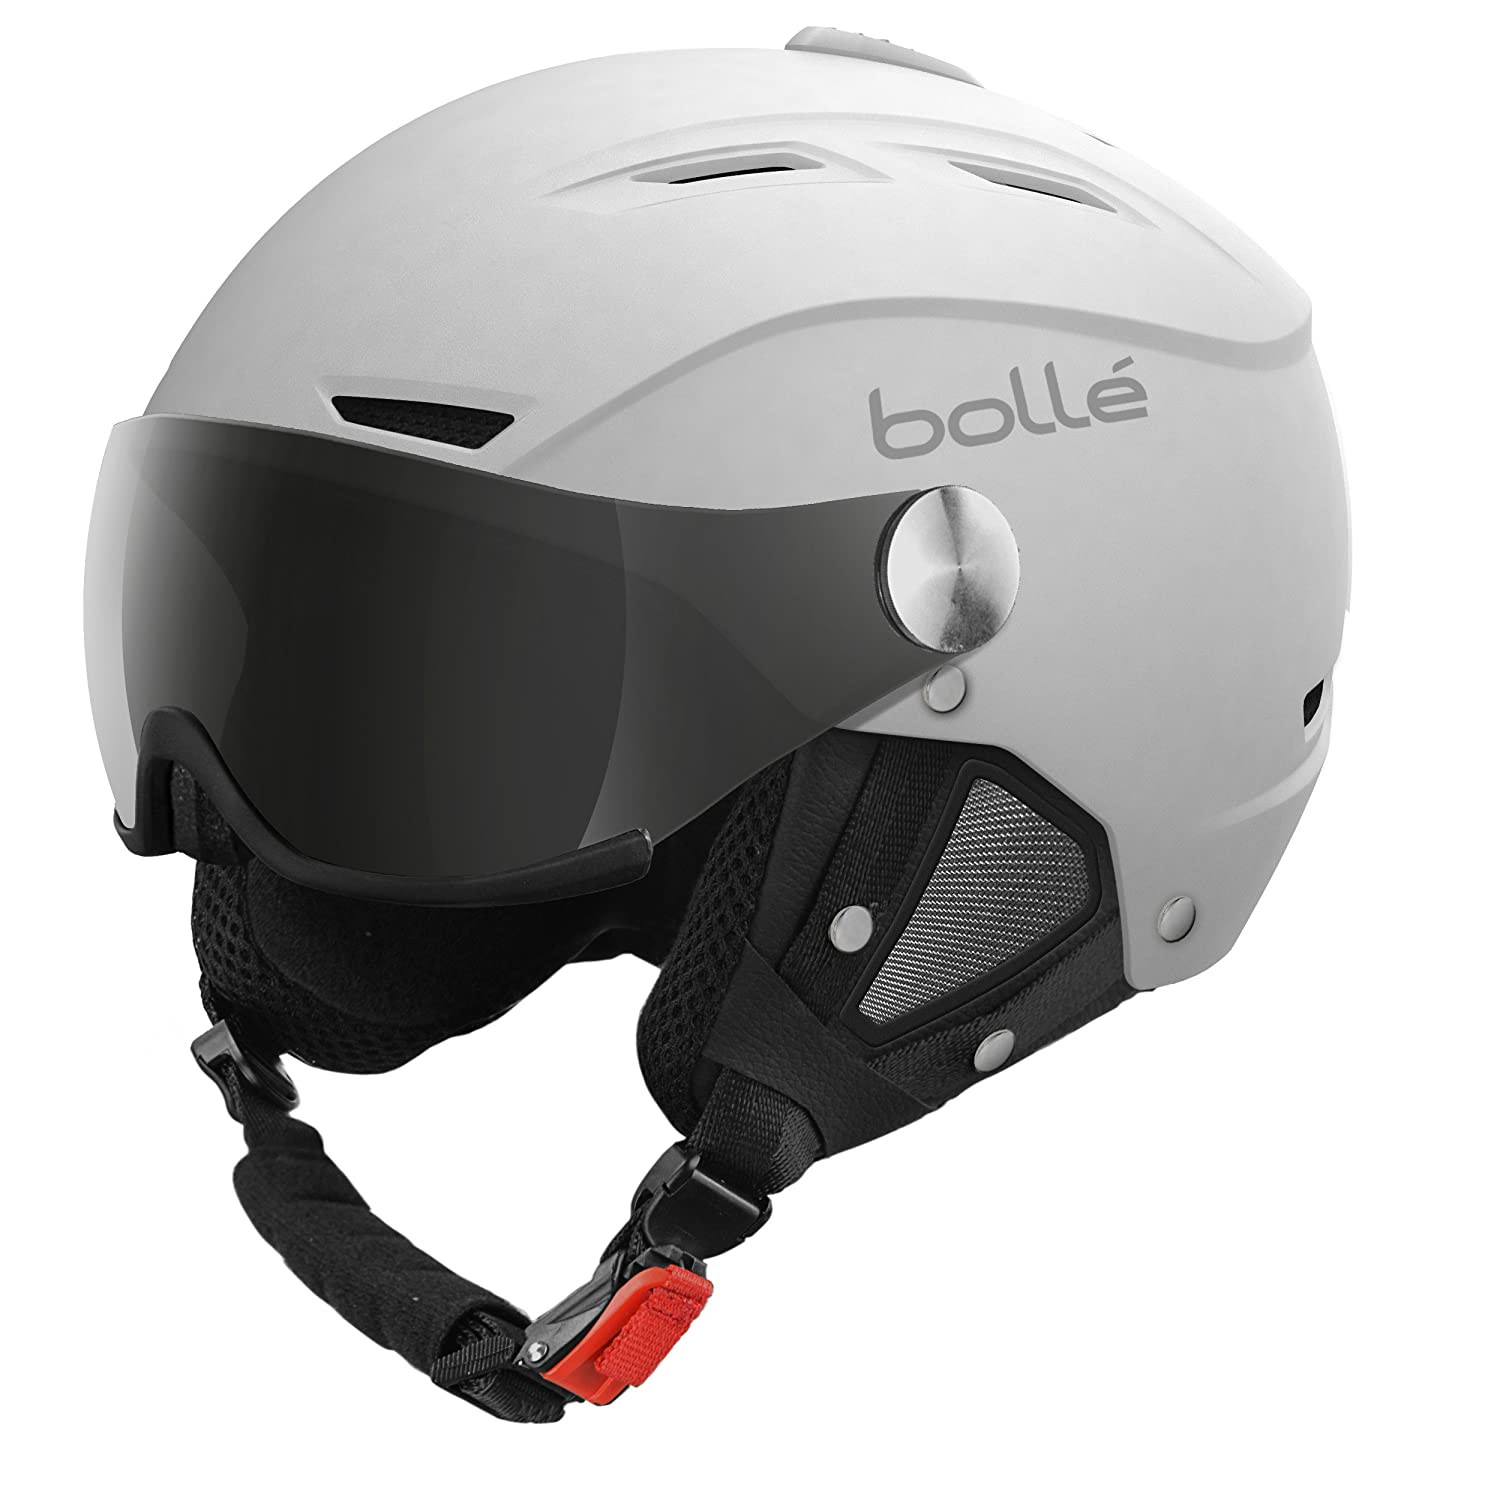 Bollé Helmet Backline Visor Soft with Lemon Casco de esquí